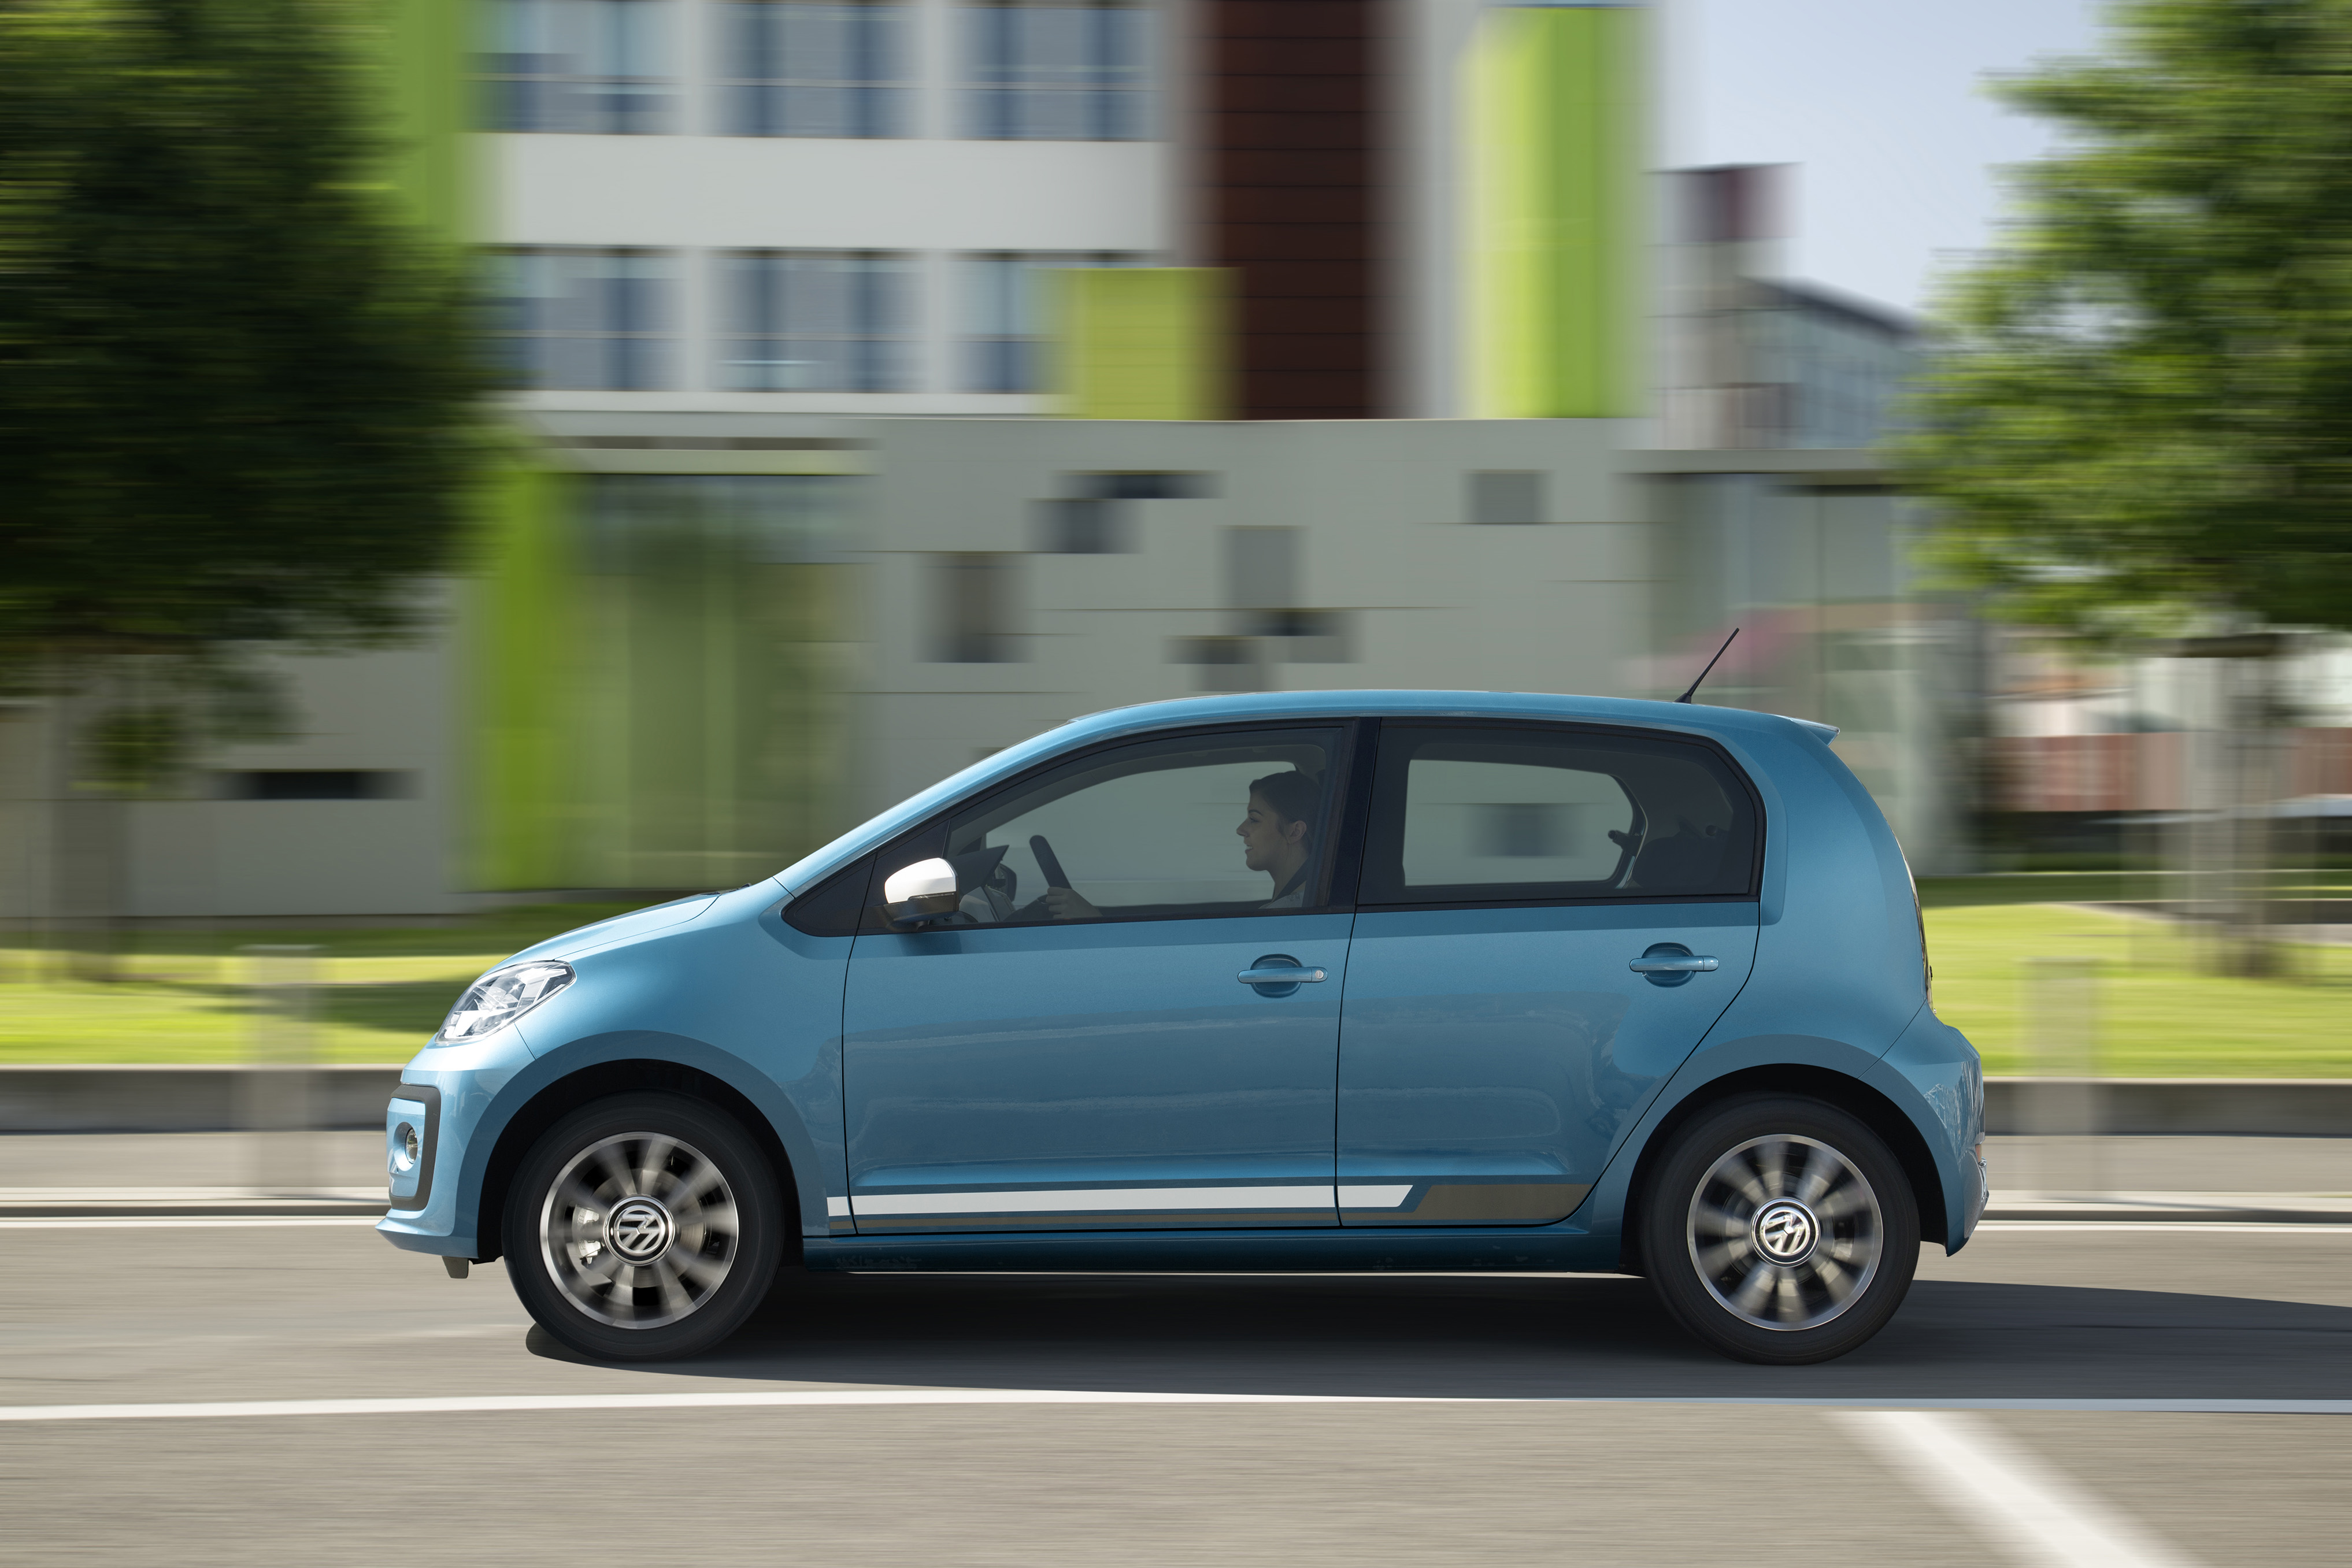 High Point Auto Sales >> Volkswagen up! City Car's Future Uncertain In Europe, e-up! Is Safe For Now - autoevolution